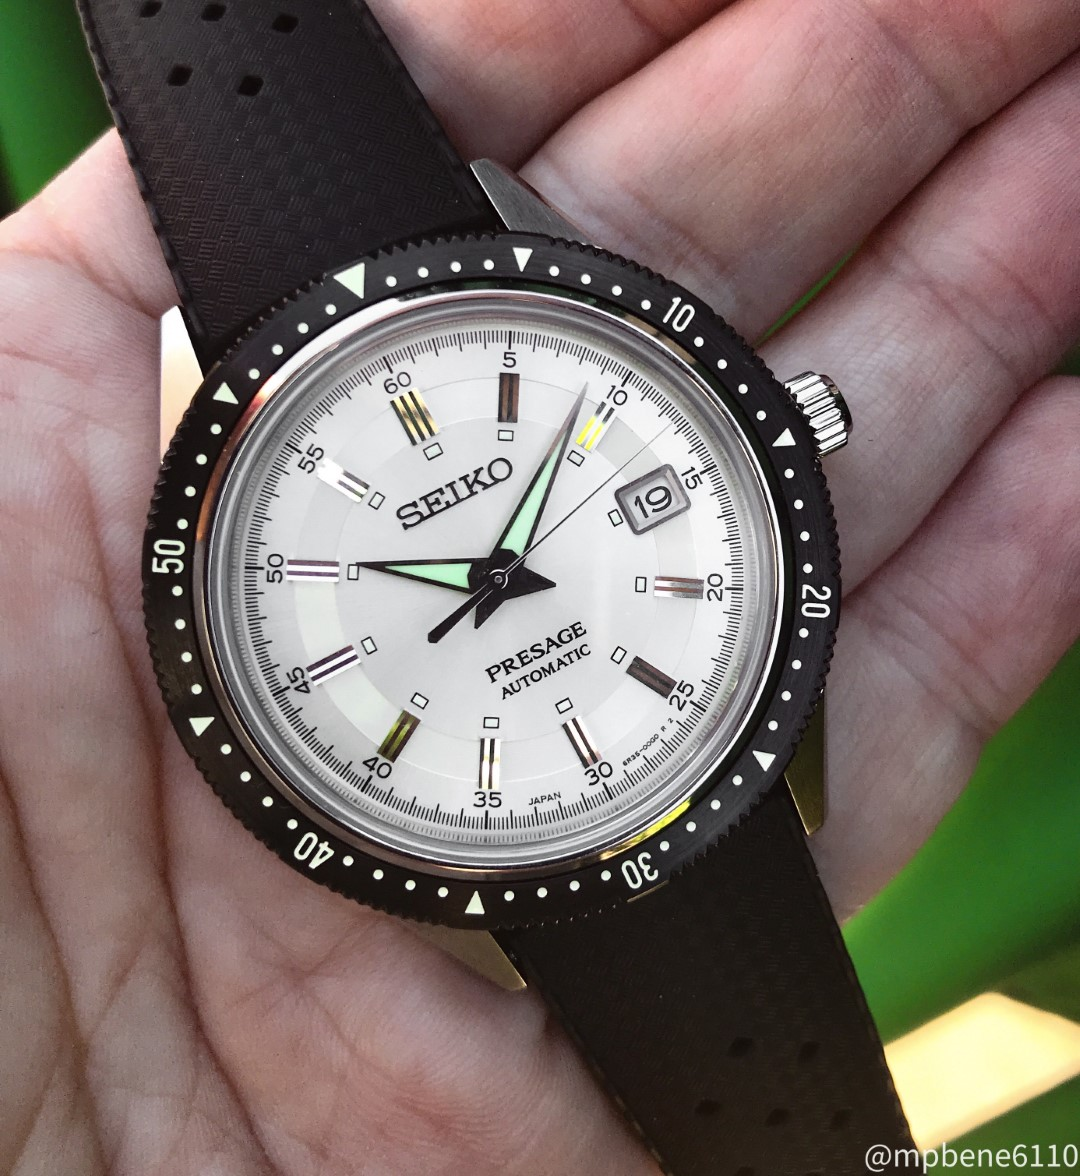 Sixties Vibes are back again – Seiko SPB127 Tokio Limited